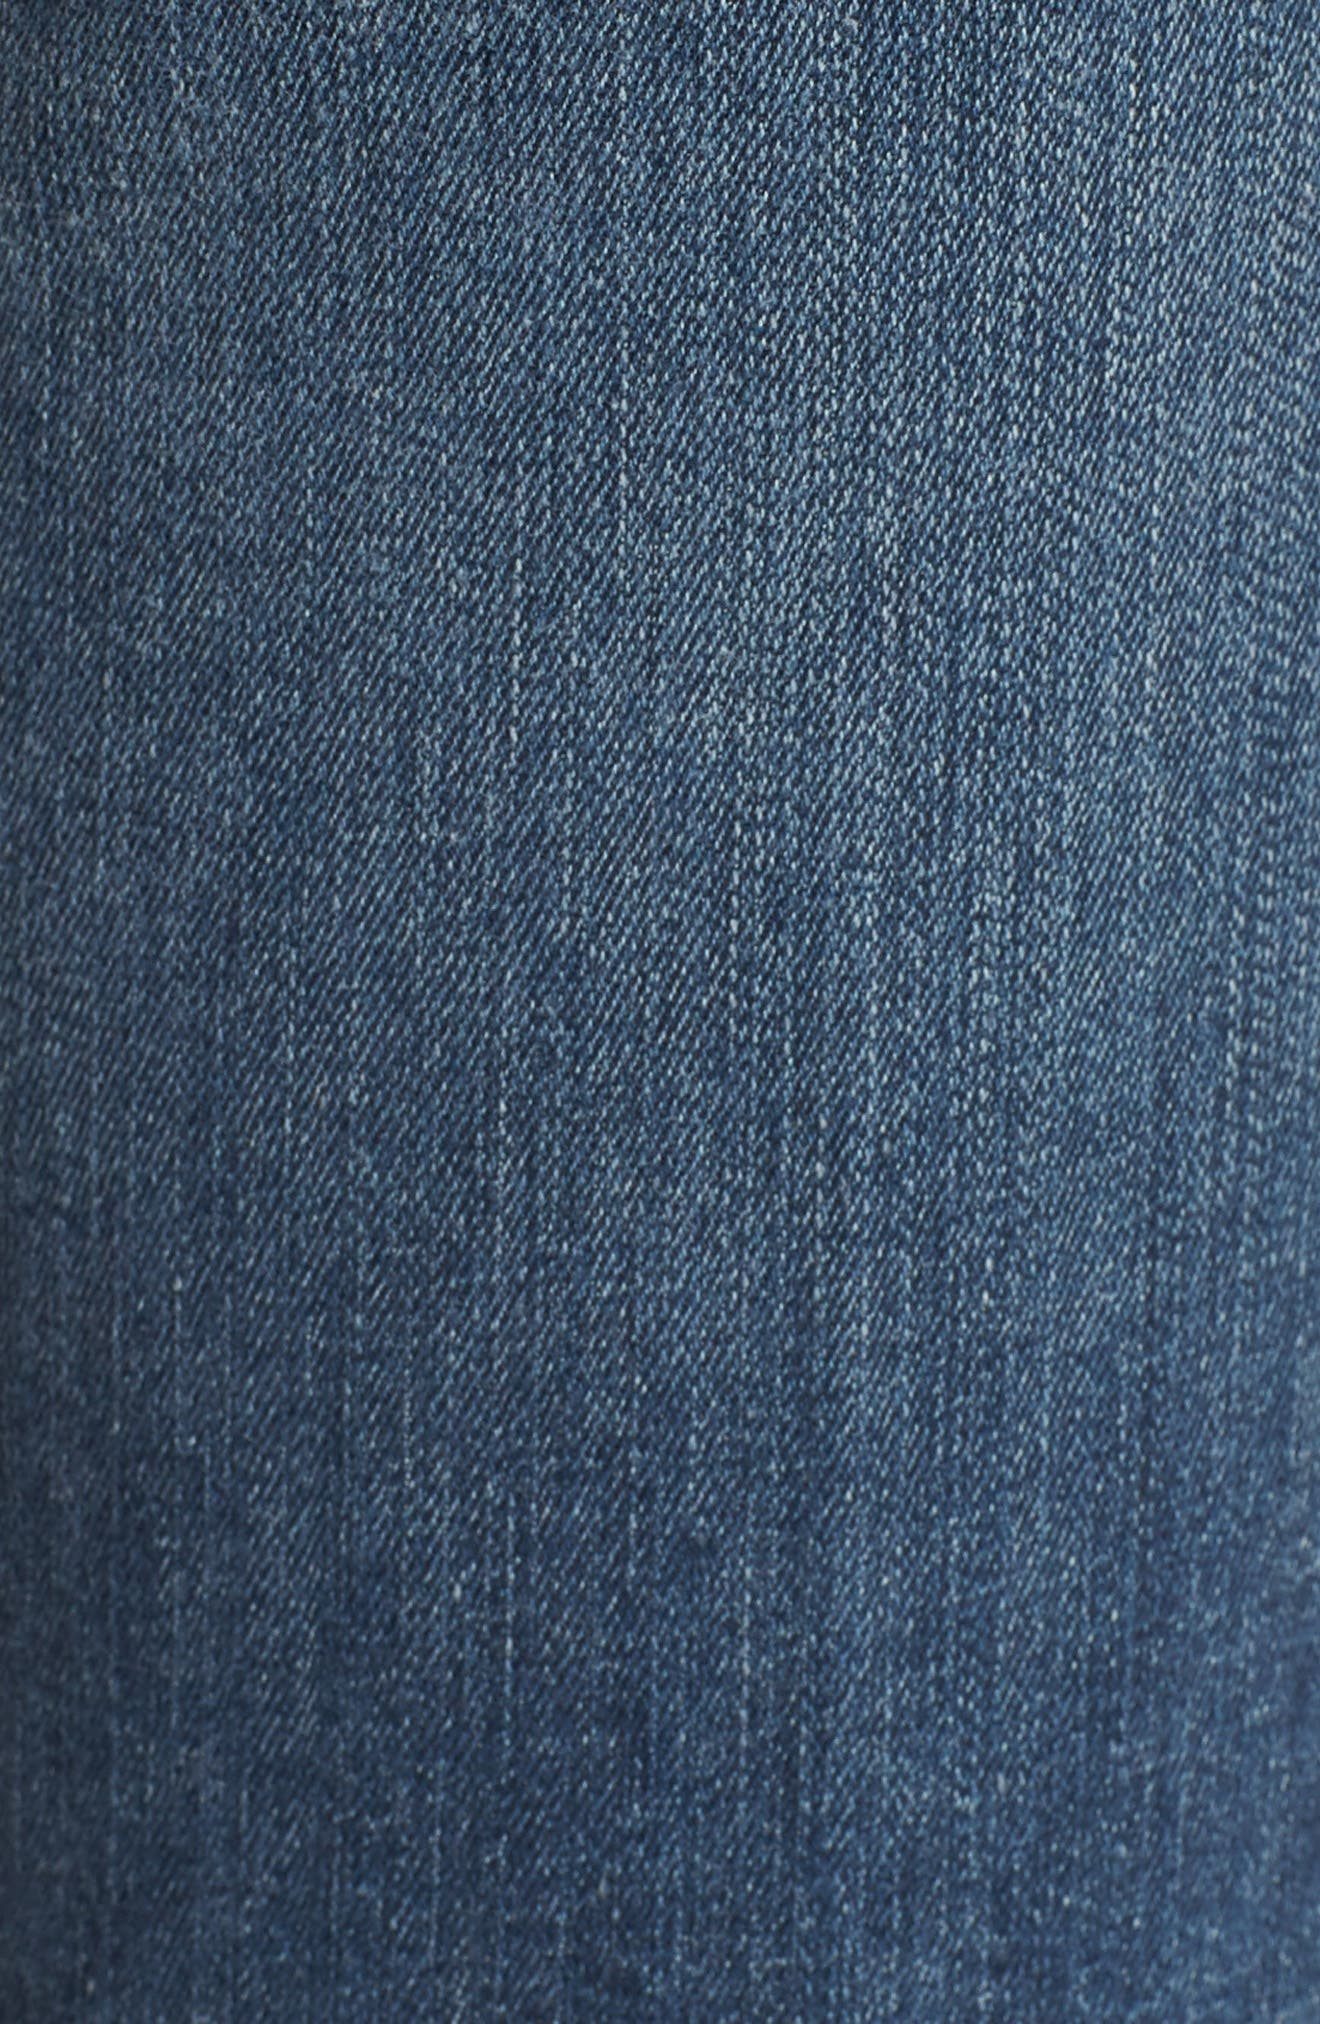 Newton Crop Skinny Jeans,                             Alternate thumbnail 6, color,                             Barthelemy Gardens